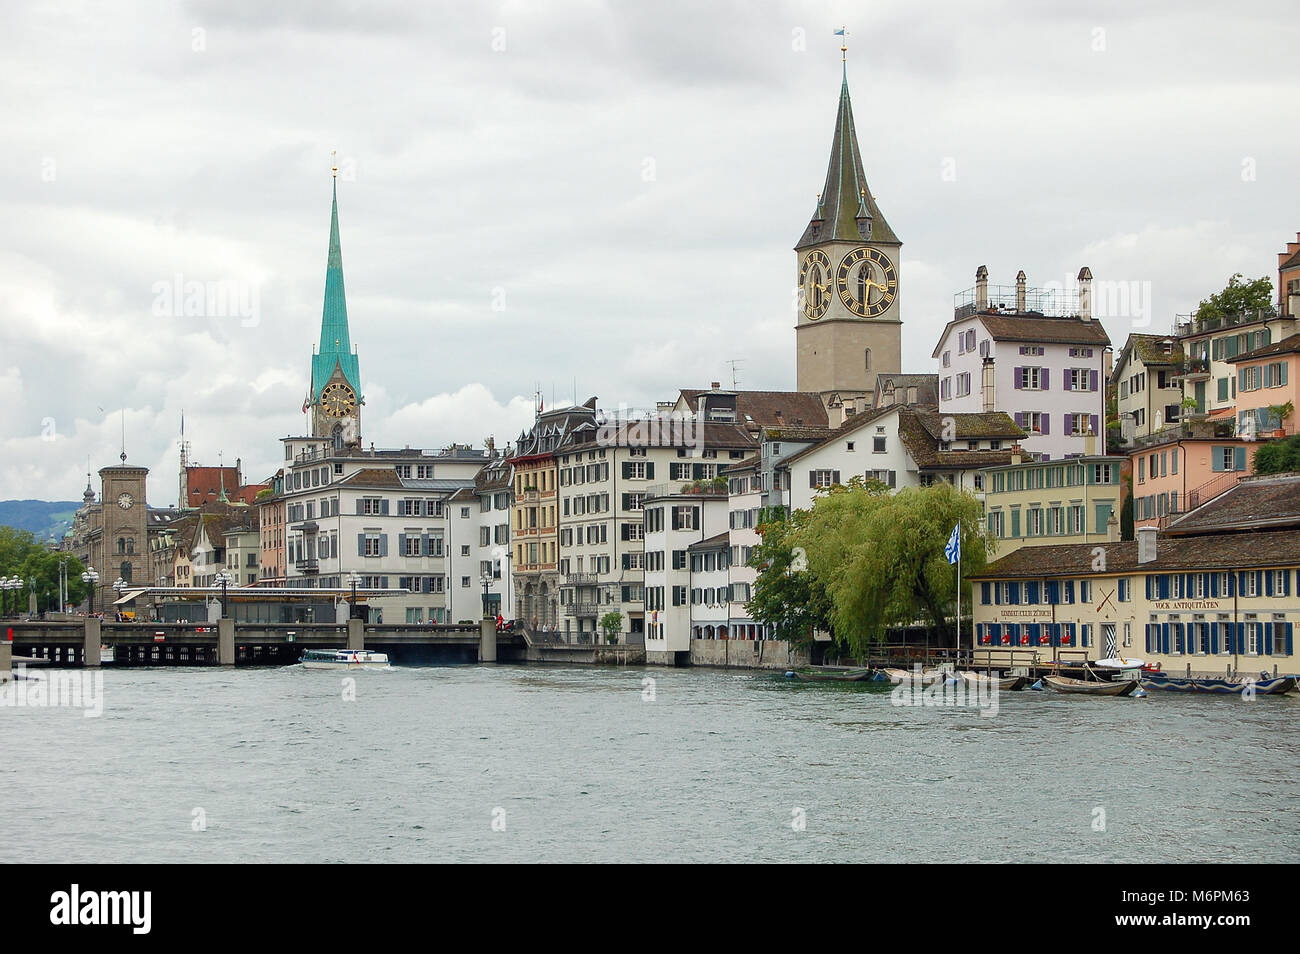 St Peter Church (Kirche) and Our Lady (Fraumunster) Church along the Limmat River - Zurich, Switzerland - Stock Image